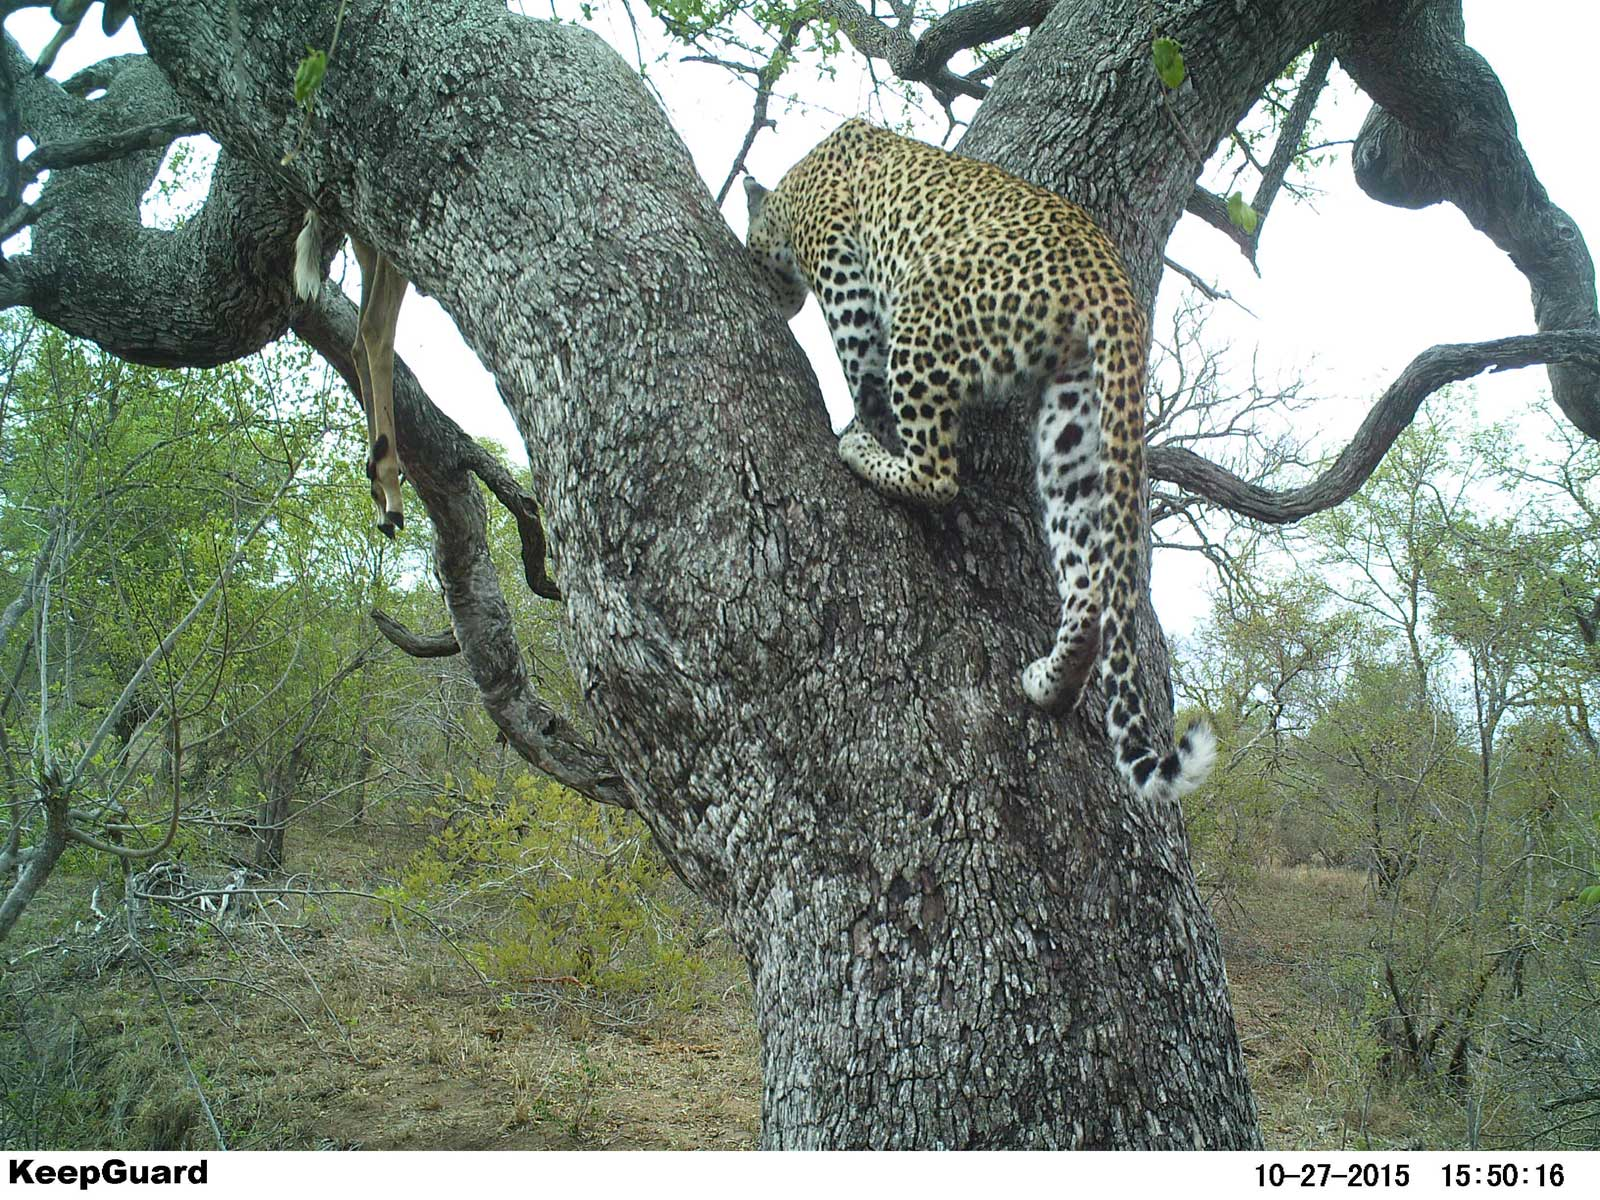 Hidden Camera Reveals Leopard And Lion In Tree